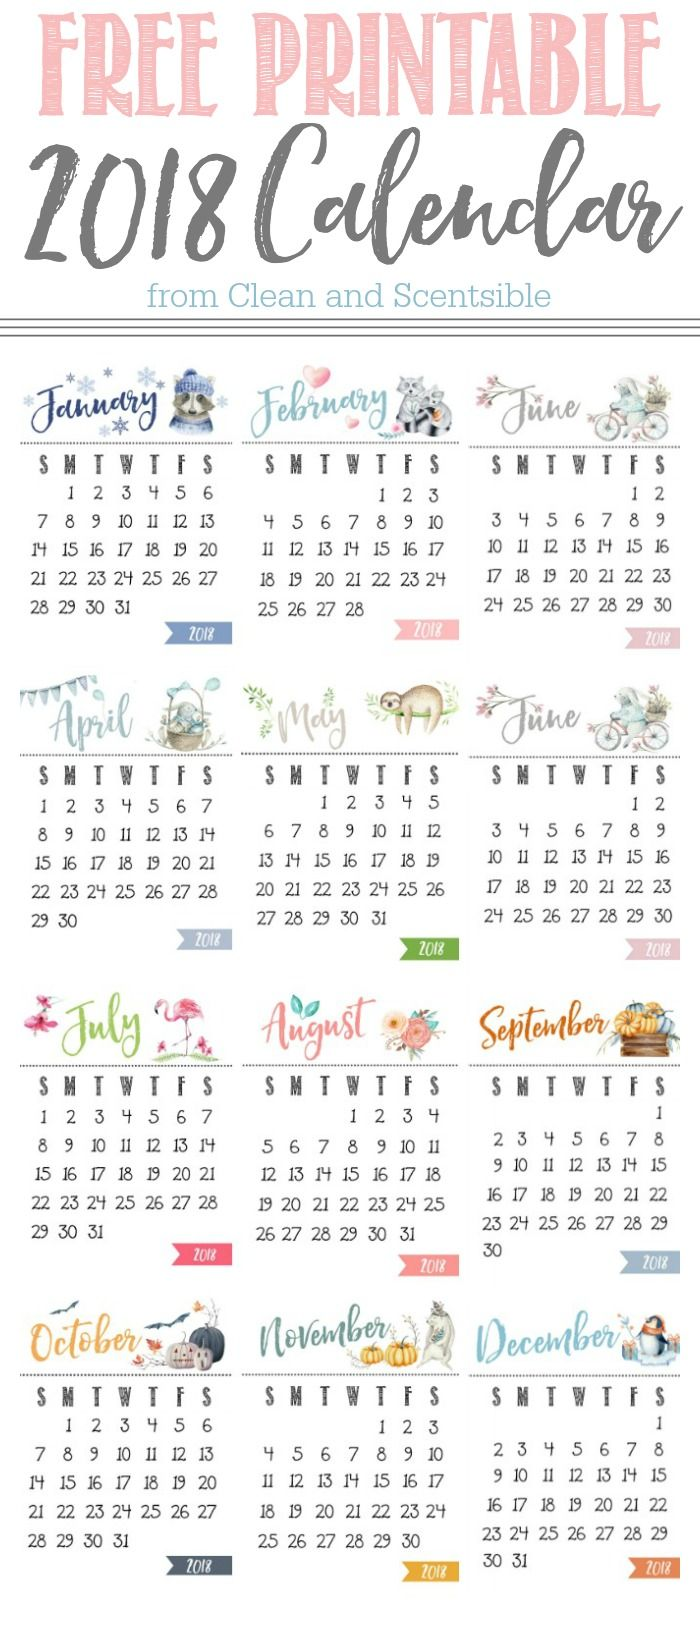 Cute watercolor free printable 2018 calendar. Display on a stand, hang, or add to a mini-clipboard. Stay organized for 2018! THIS CALENDAR IS UPDATED YEARLY.